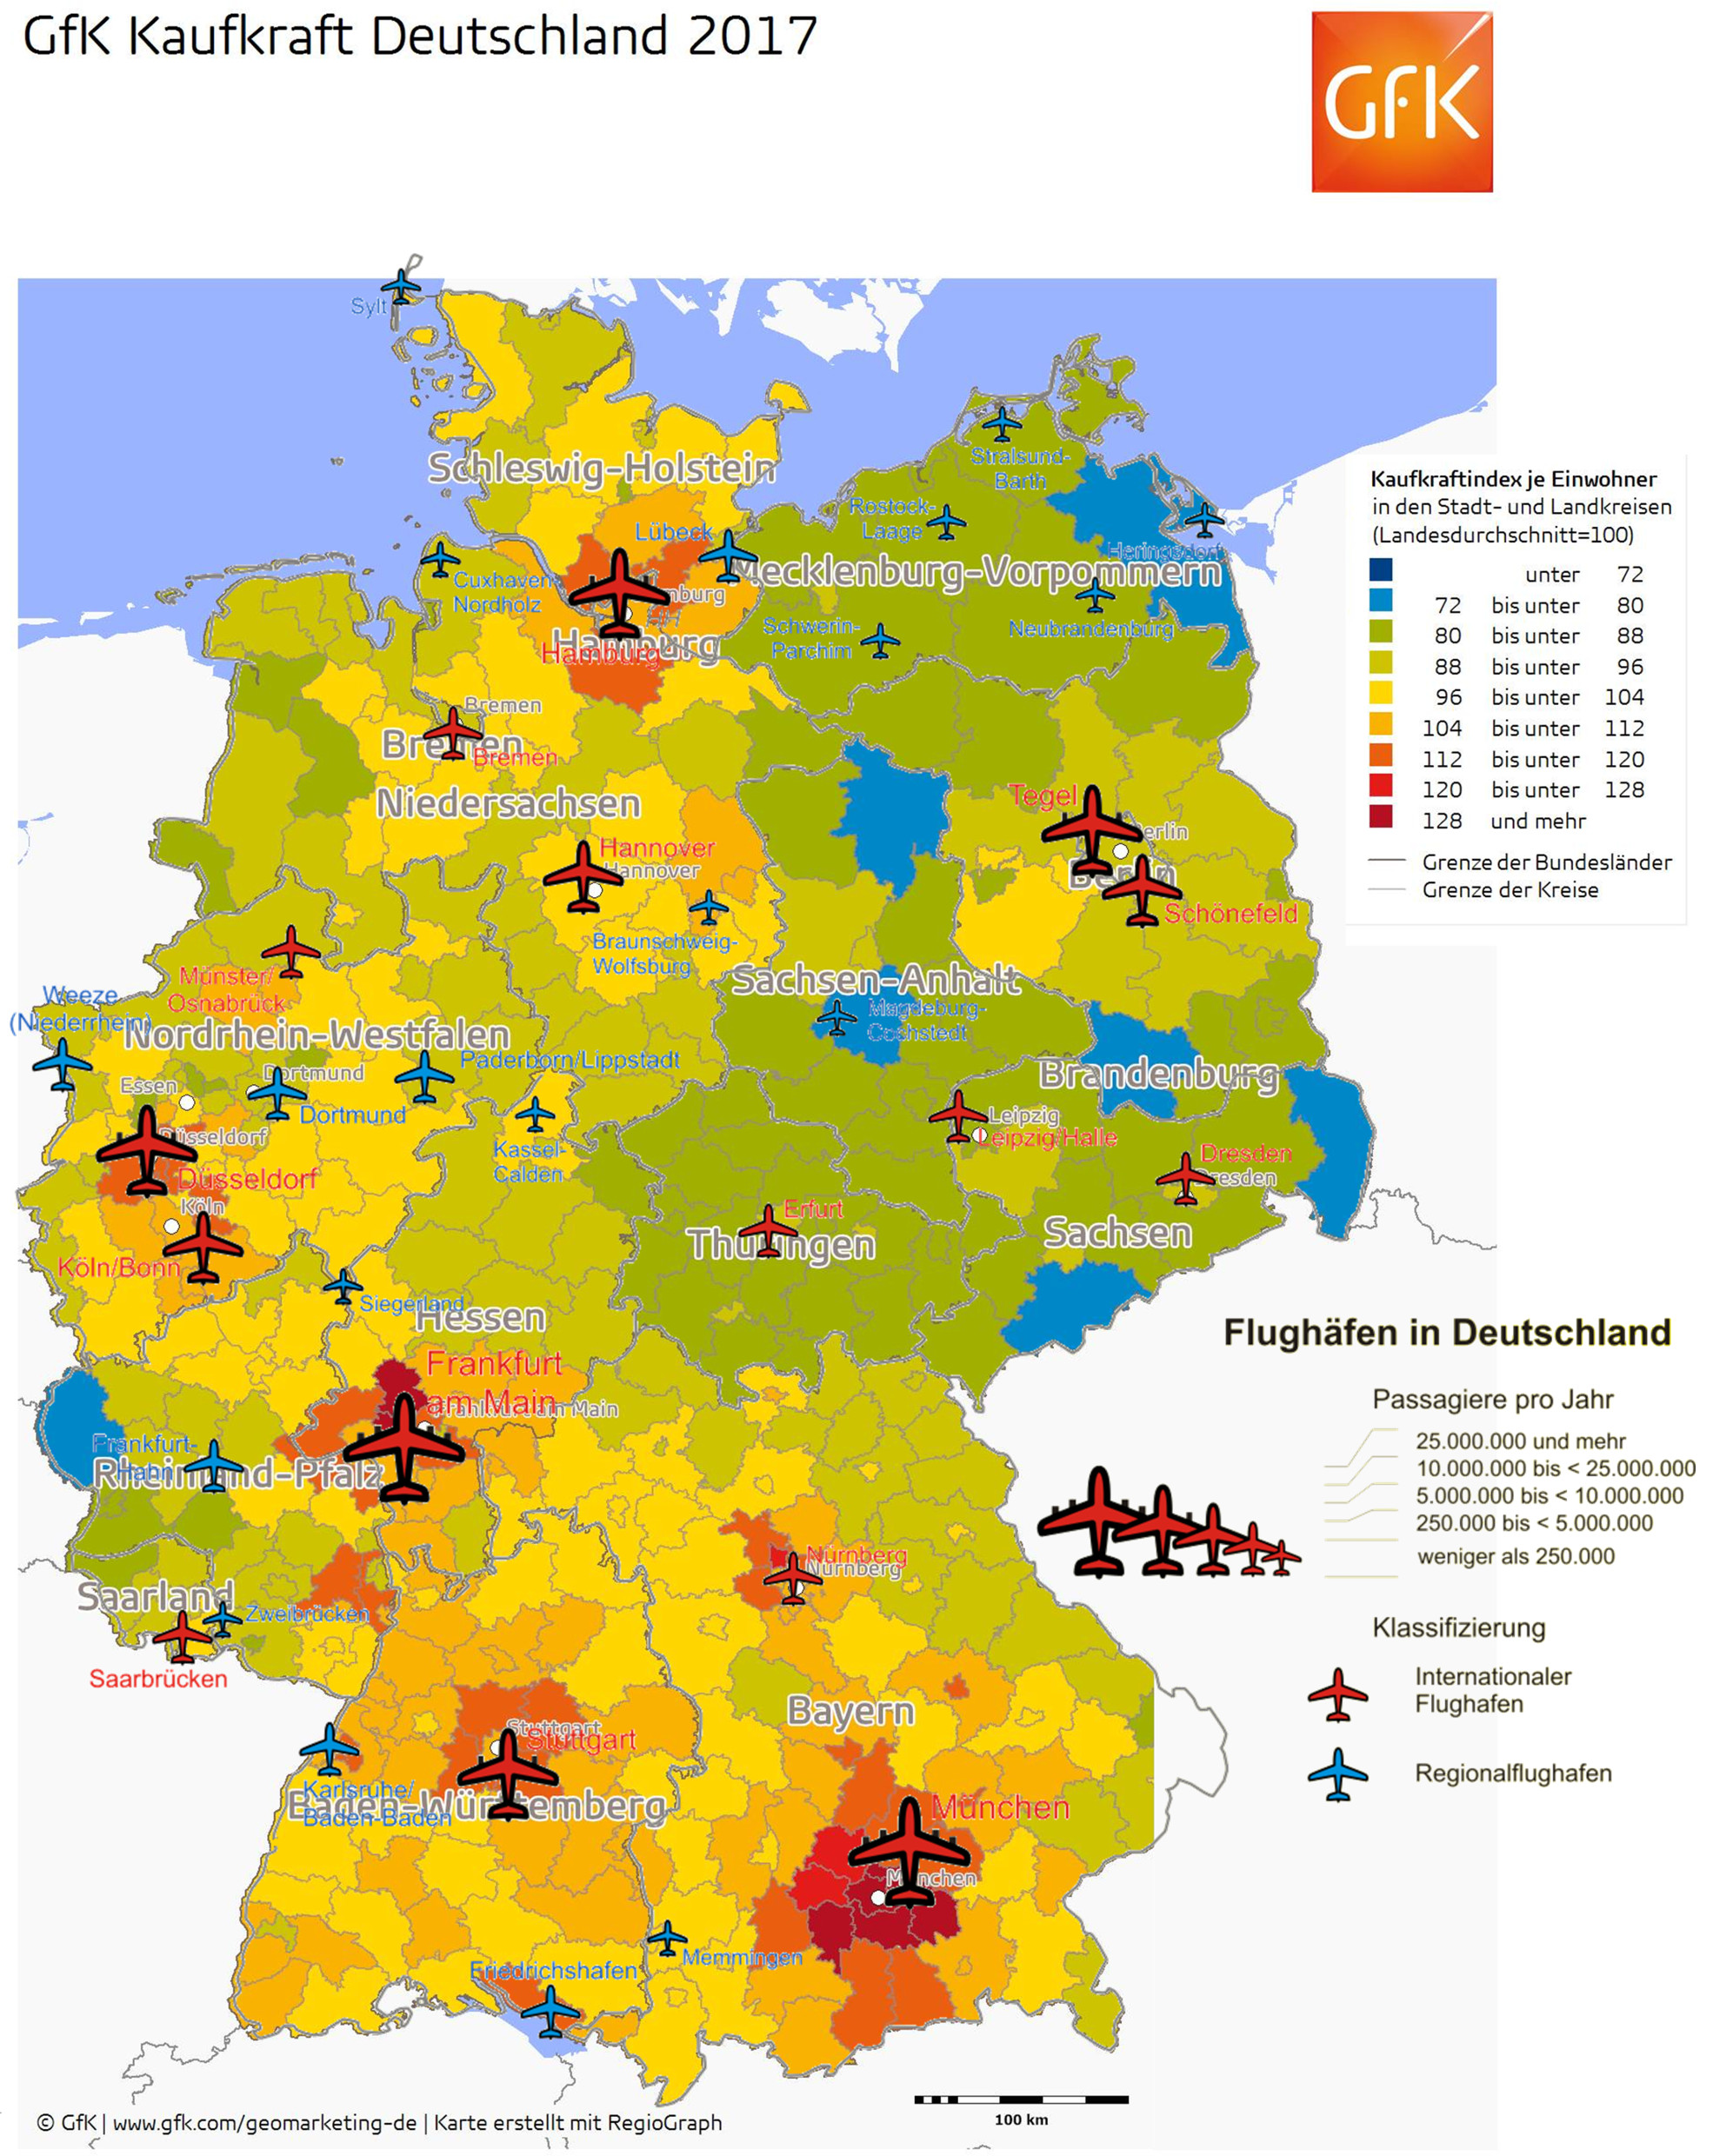 An overlay map of GFK Purchasing Power map Germany with the German airports from Wikipedia.